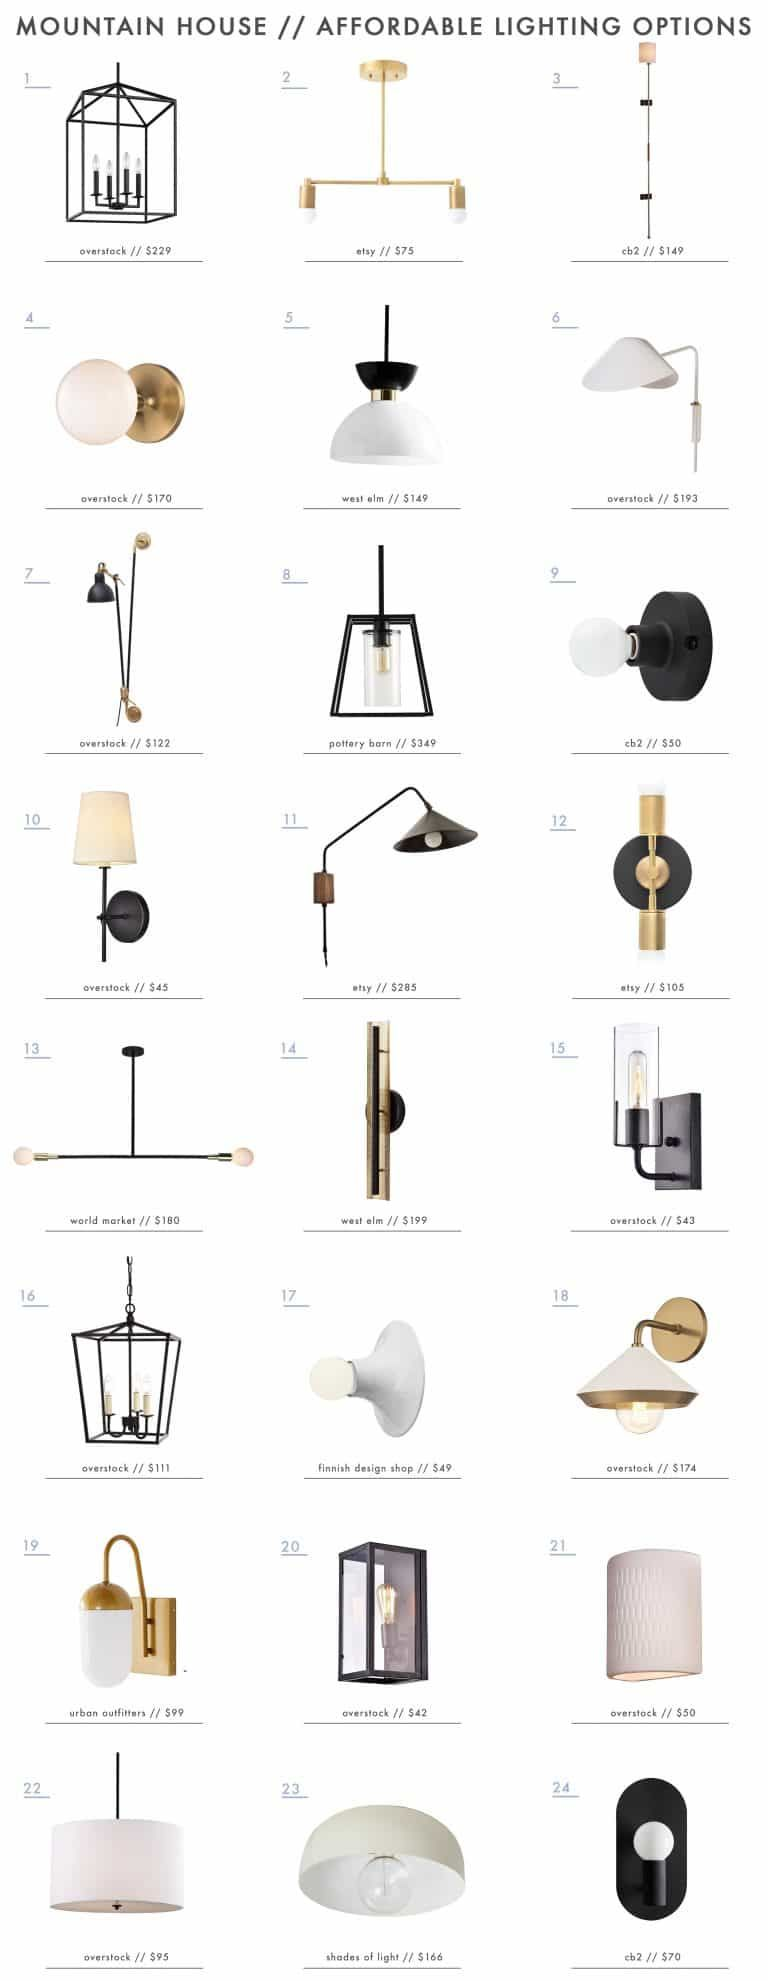 Online Room Designer Tool: How I Chose ALL The Lights For The